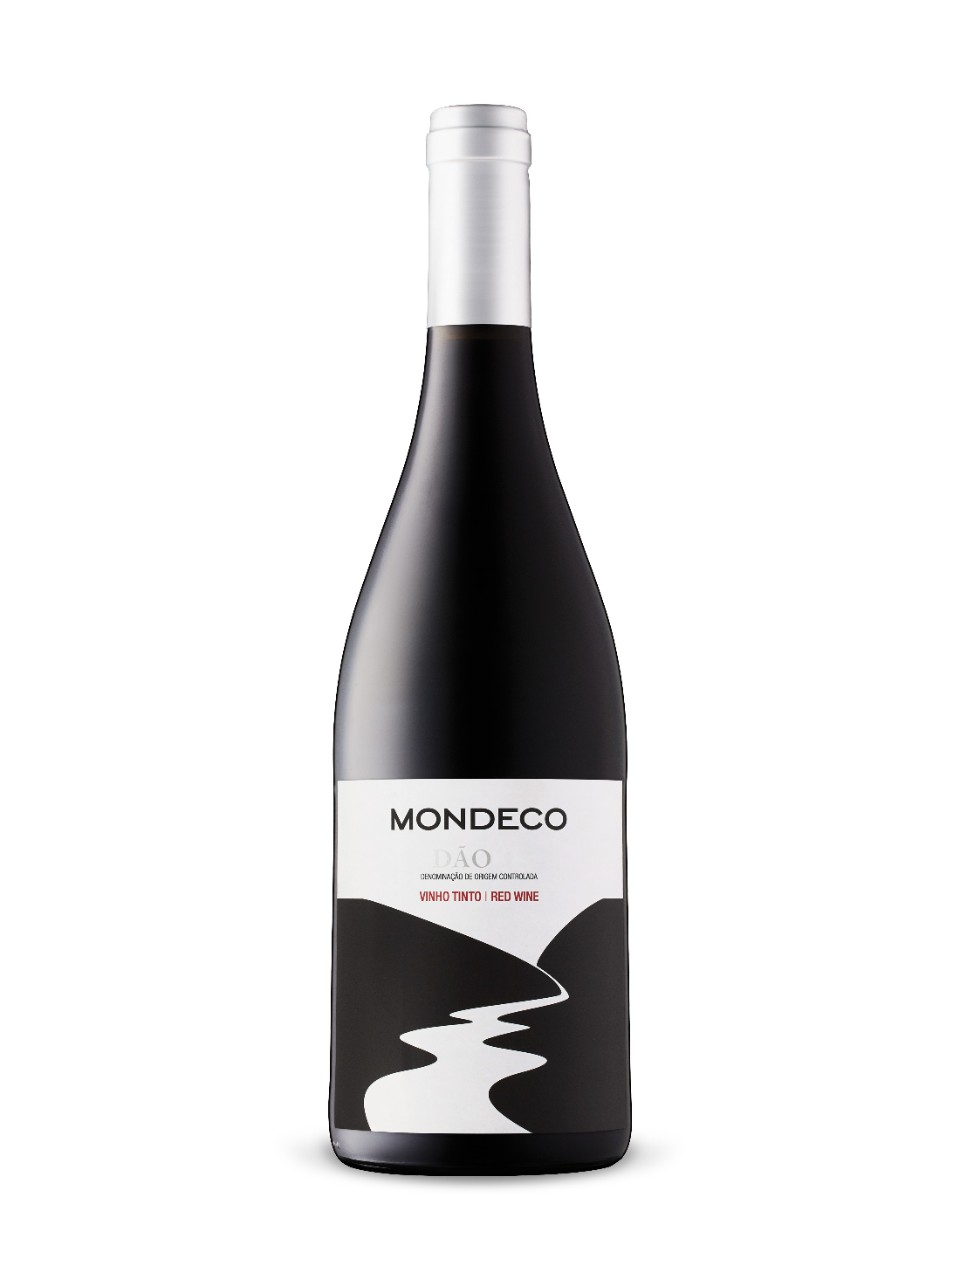 Mondeco Red 2015 from LCBO